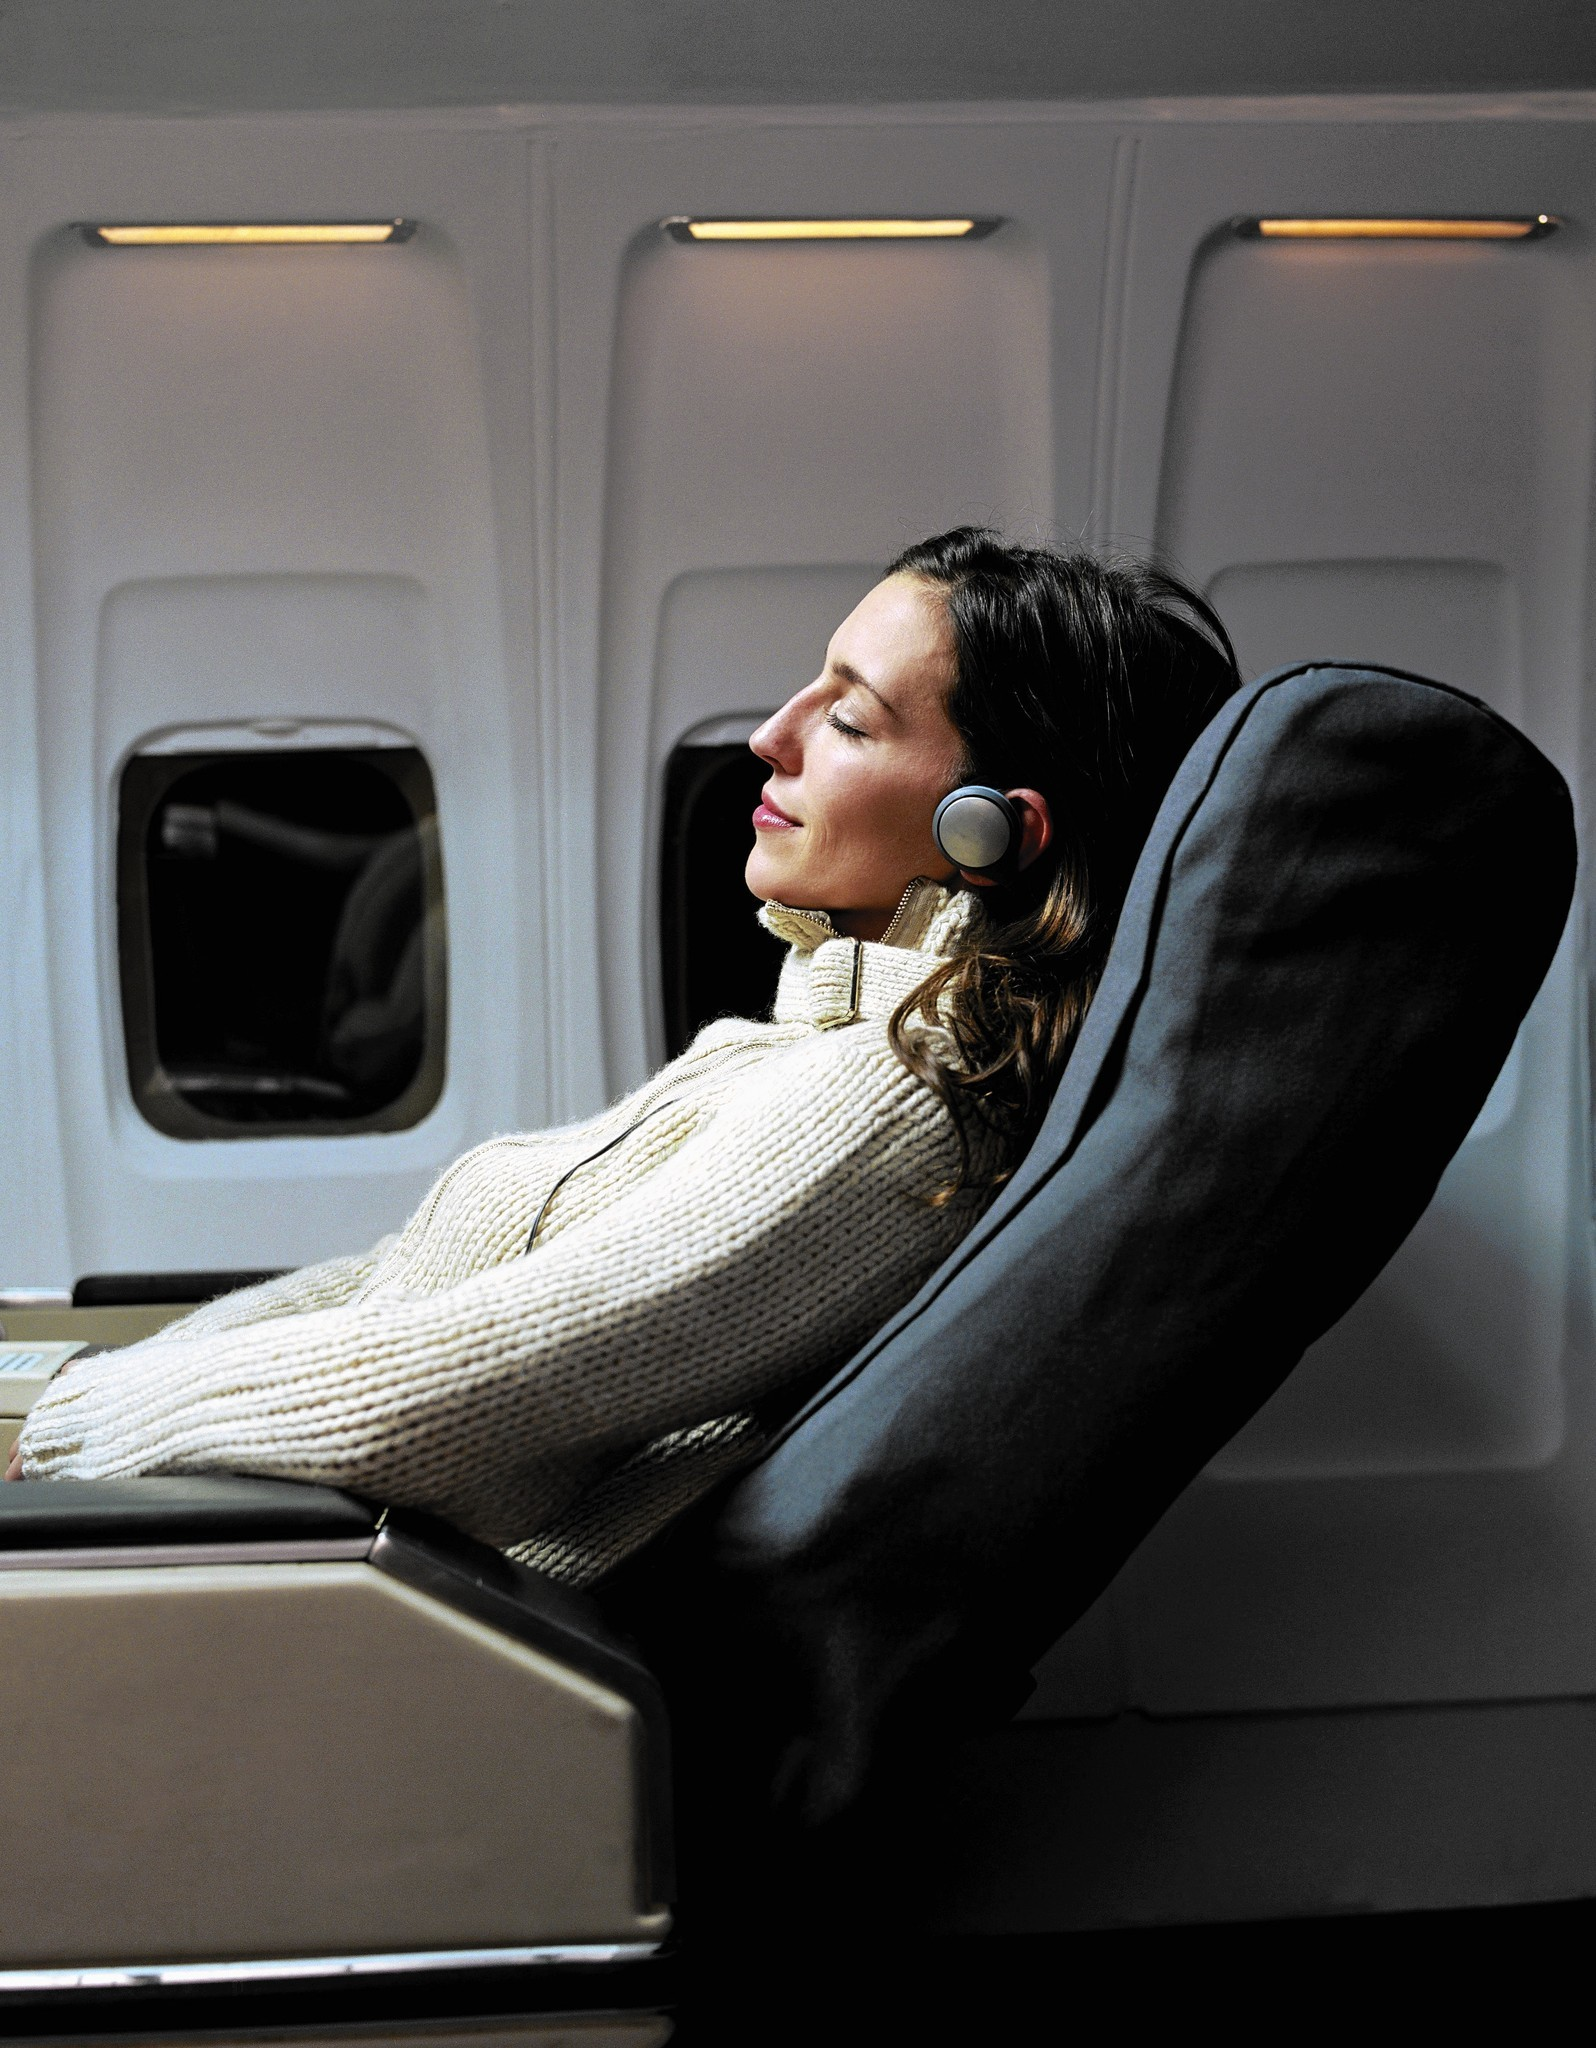 Long-distance flight in your future? Here's the pro checklist for comfort in the air